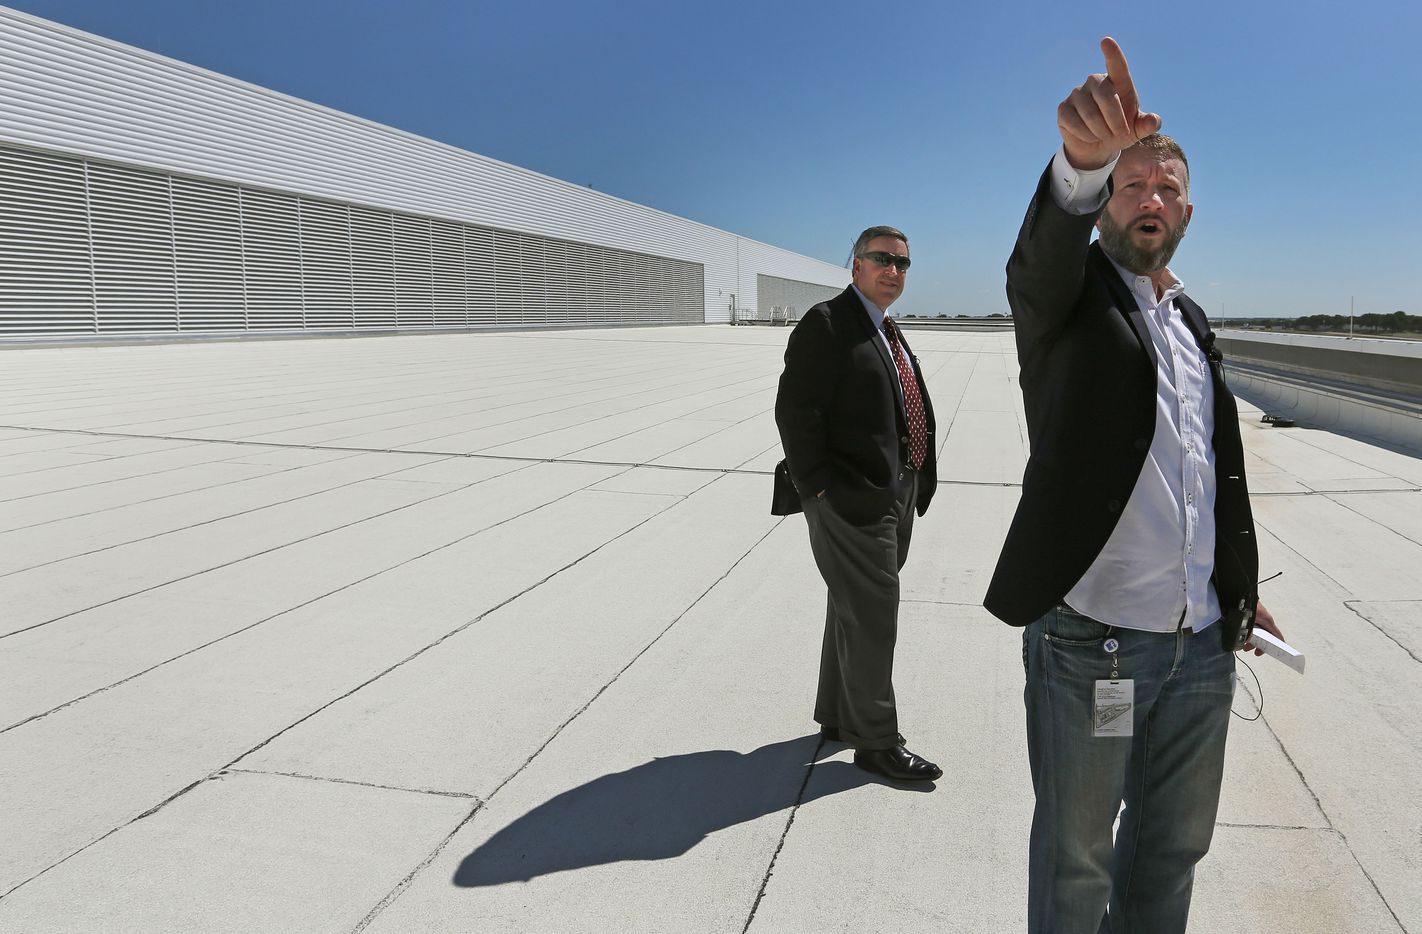 Site Manager KC Timmons, right, and Tom Furlong, Vice President of Infrastructure at Facebook, point out the massive size of the facility from the roof during the grand opening and tour of Facebook's Fort Worth Data Center.